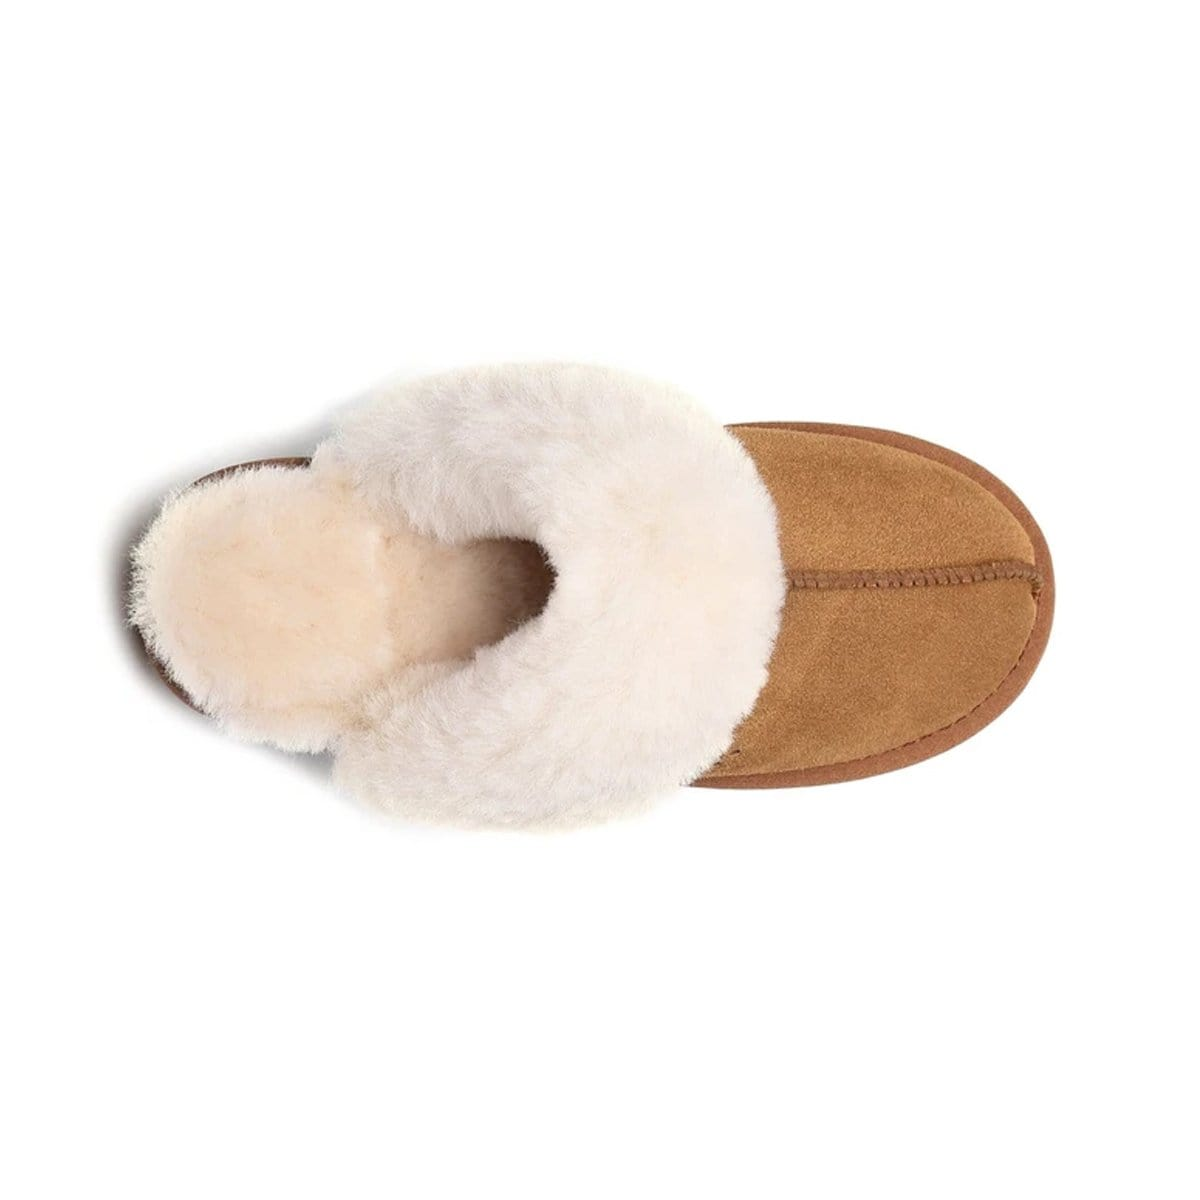 AS*Muffin Slipper - UGG Direct - Australia